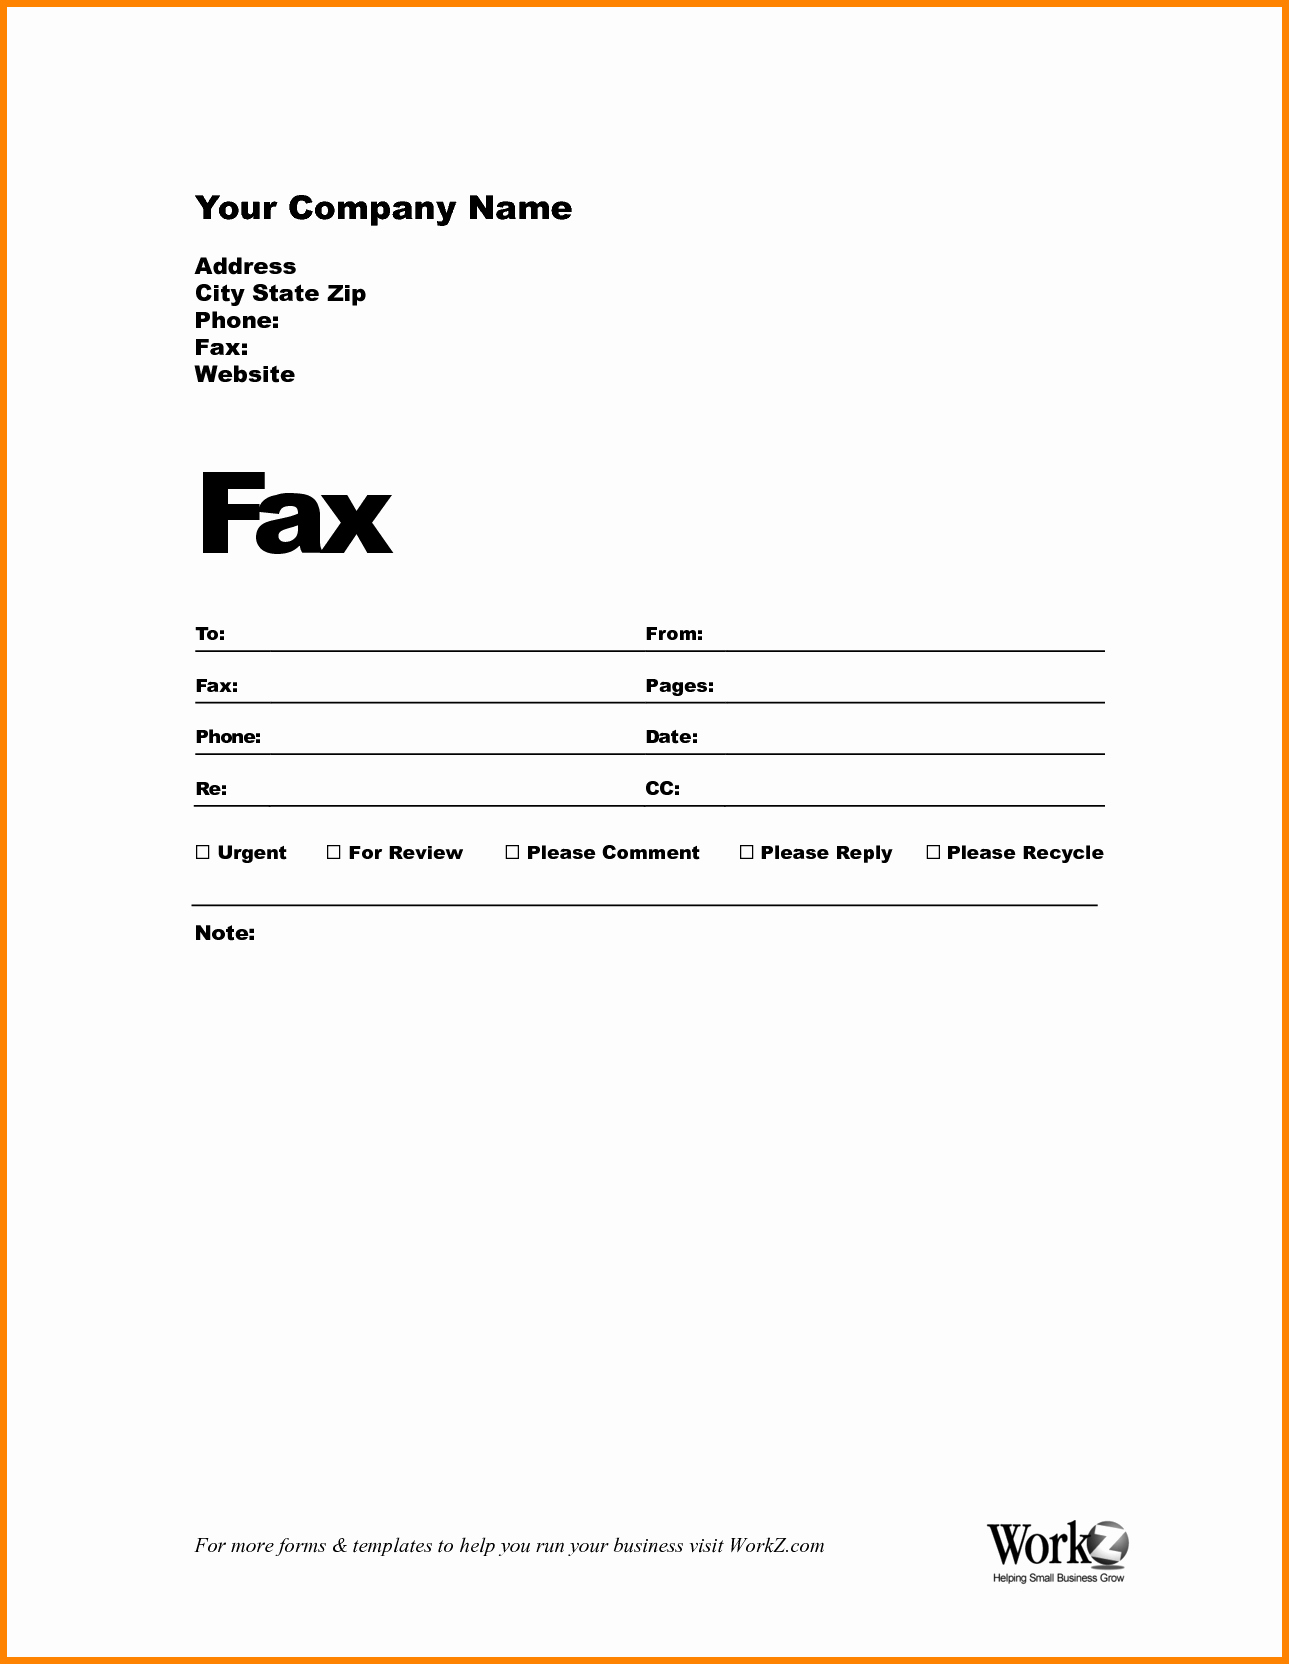 Sample Fax Cover Sheets Template New Fax Cover Sheets Cover Trakore Document Templates